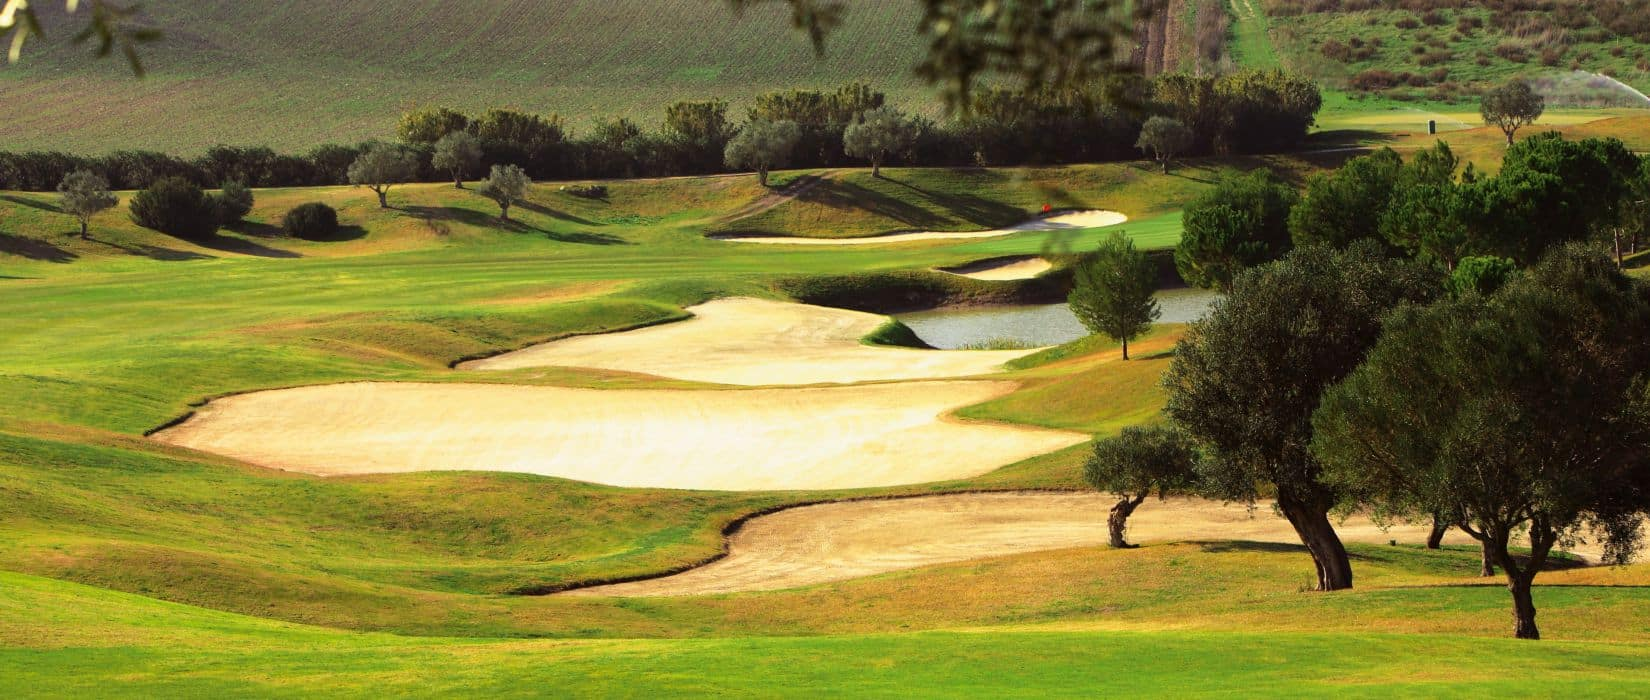 montecastillo-golf-course-1